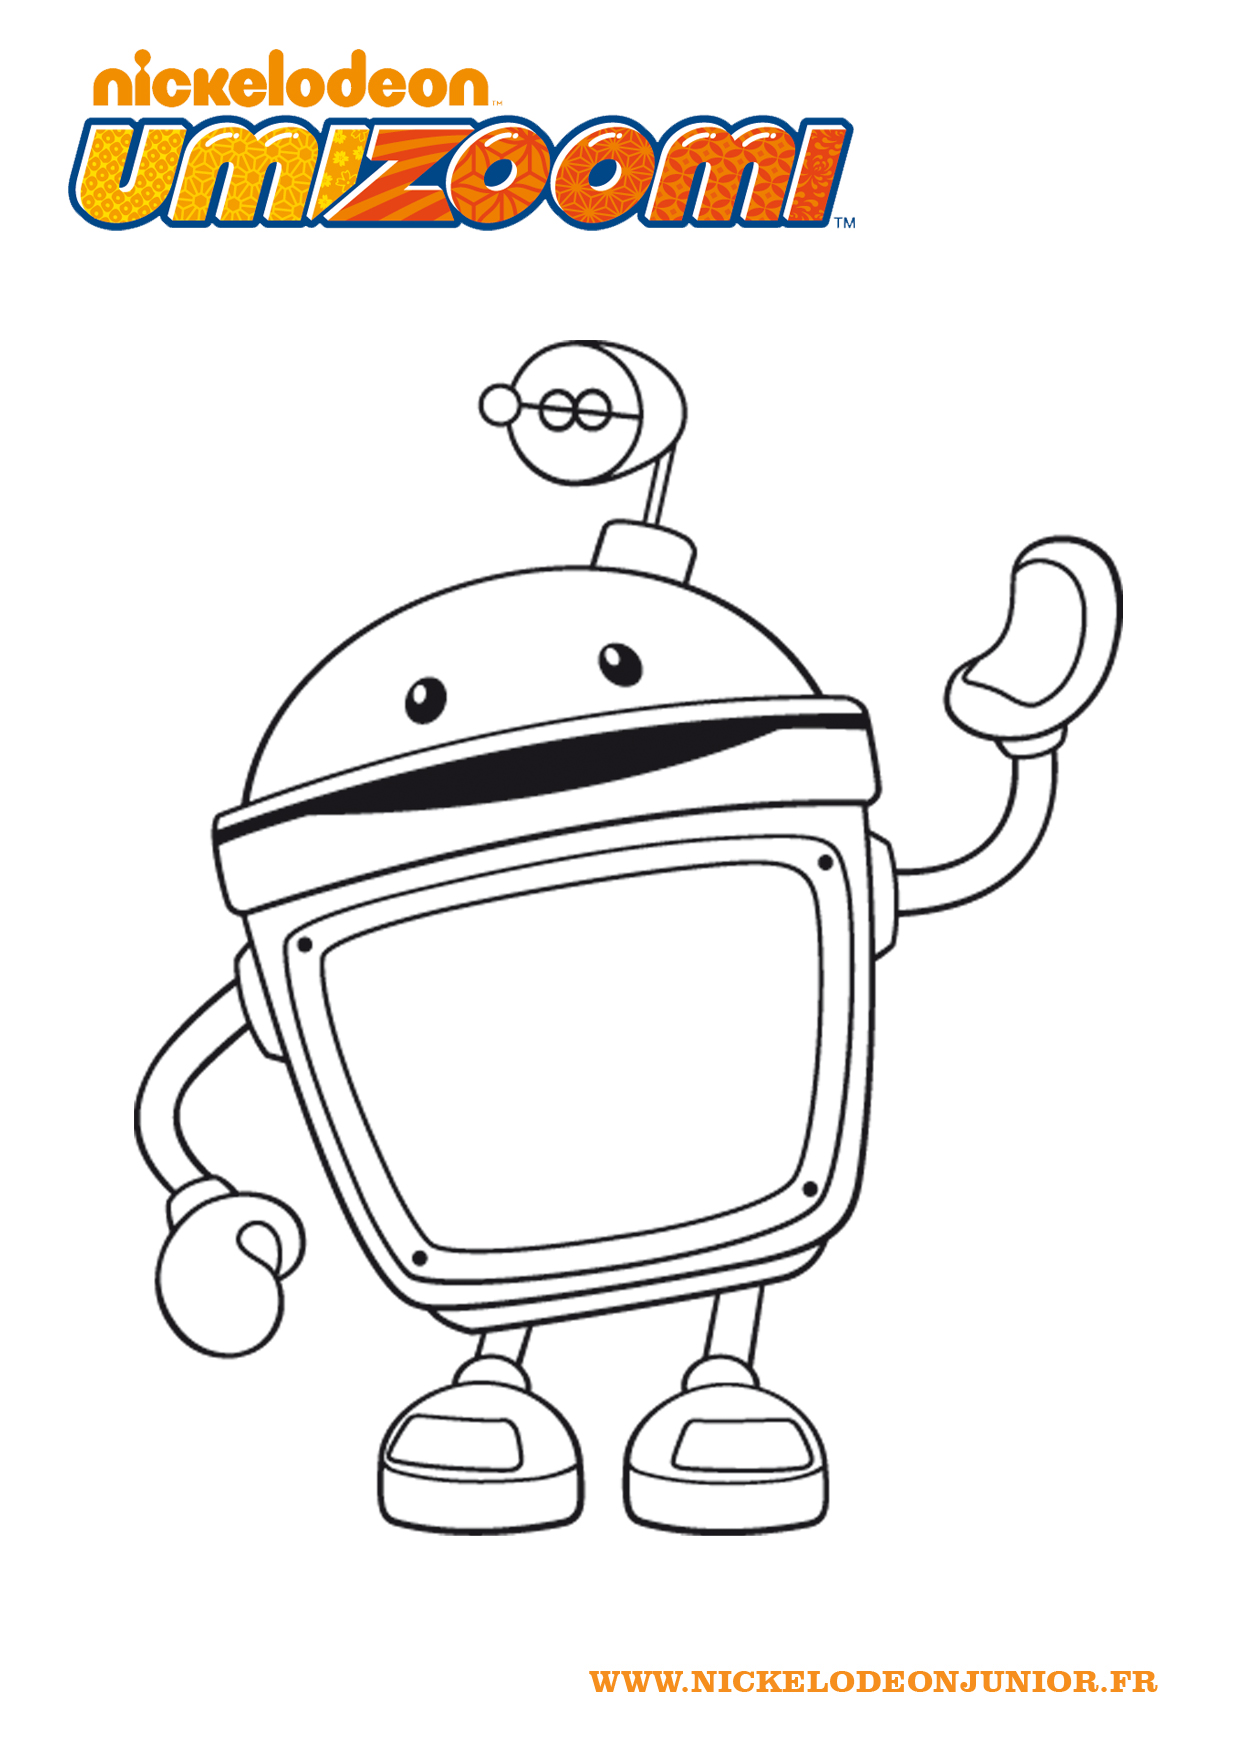 Umizoomi free to color for kids - Umizoomi Kids Coloring Pages